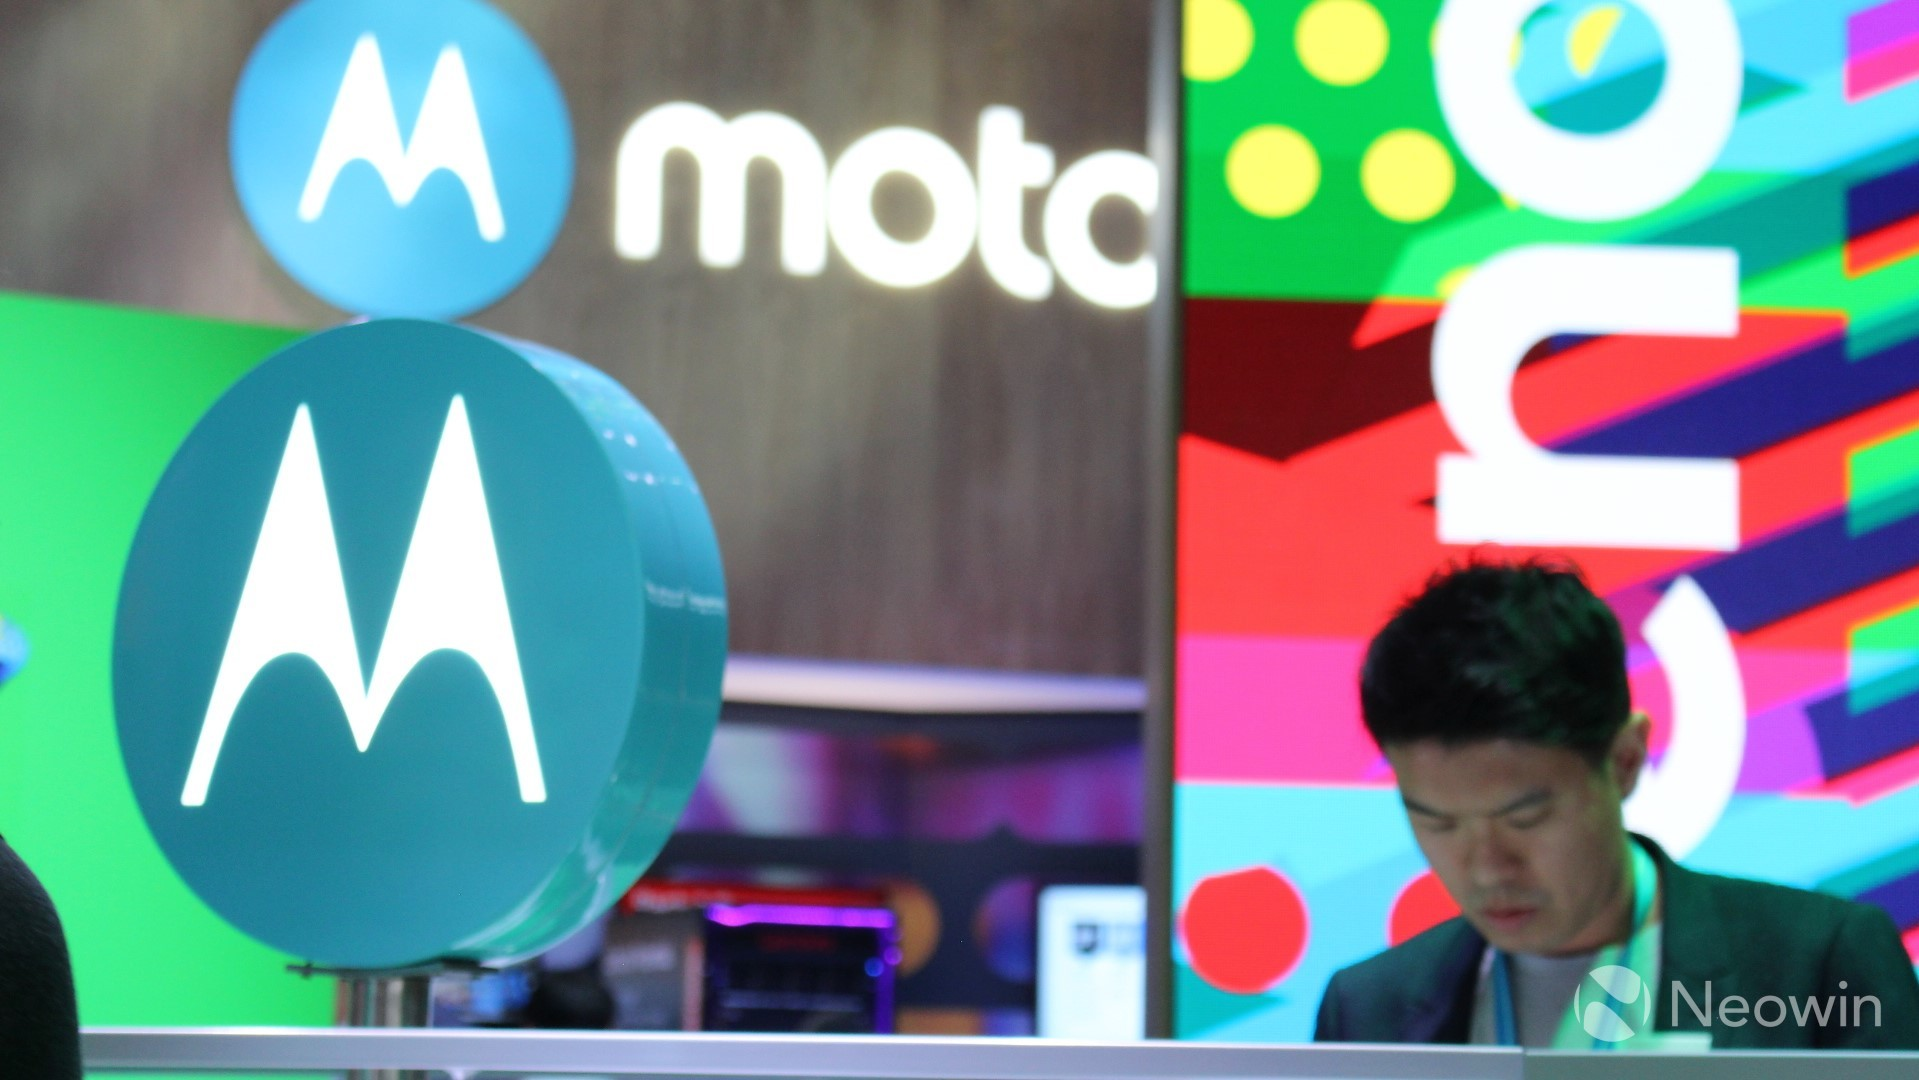 Lenovo Moto allegedly working on an Android tablet